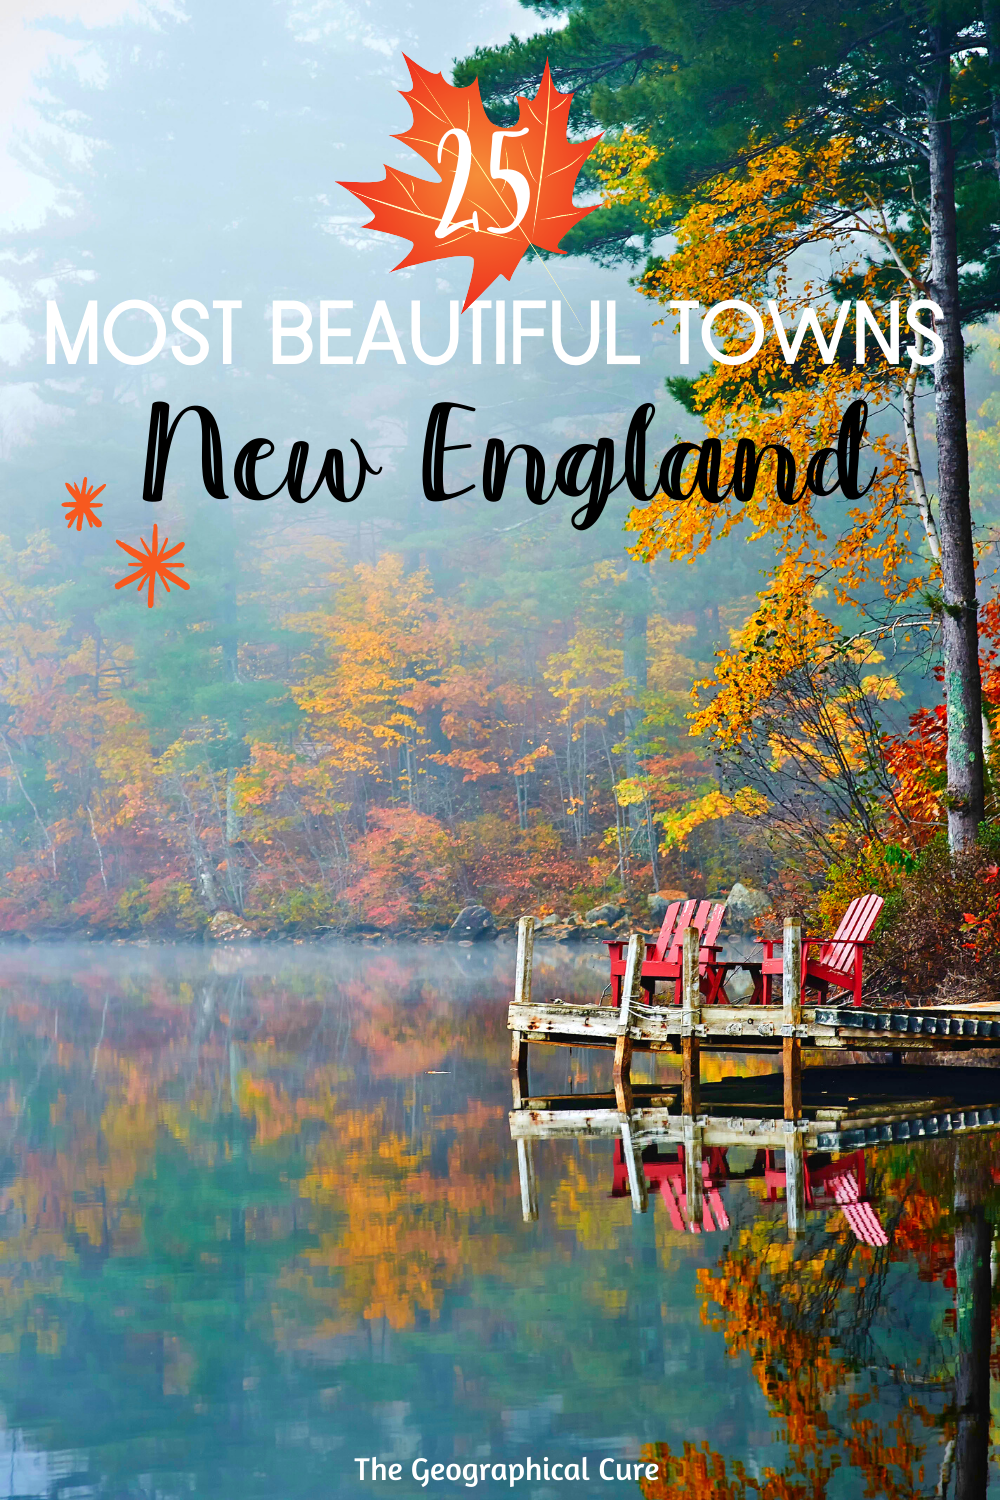 25 Most Beautiful Towns in New England